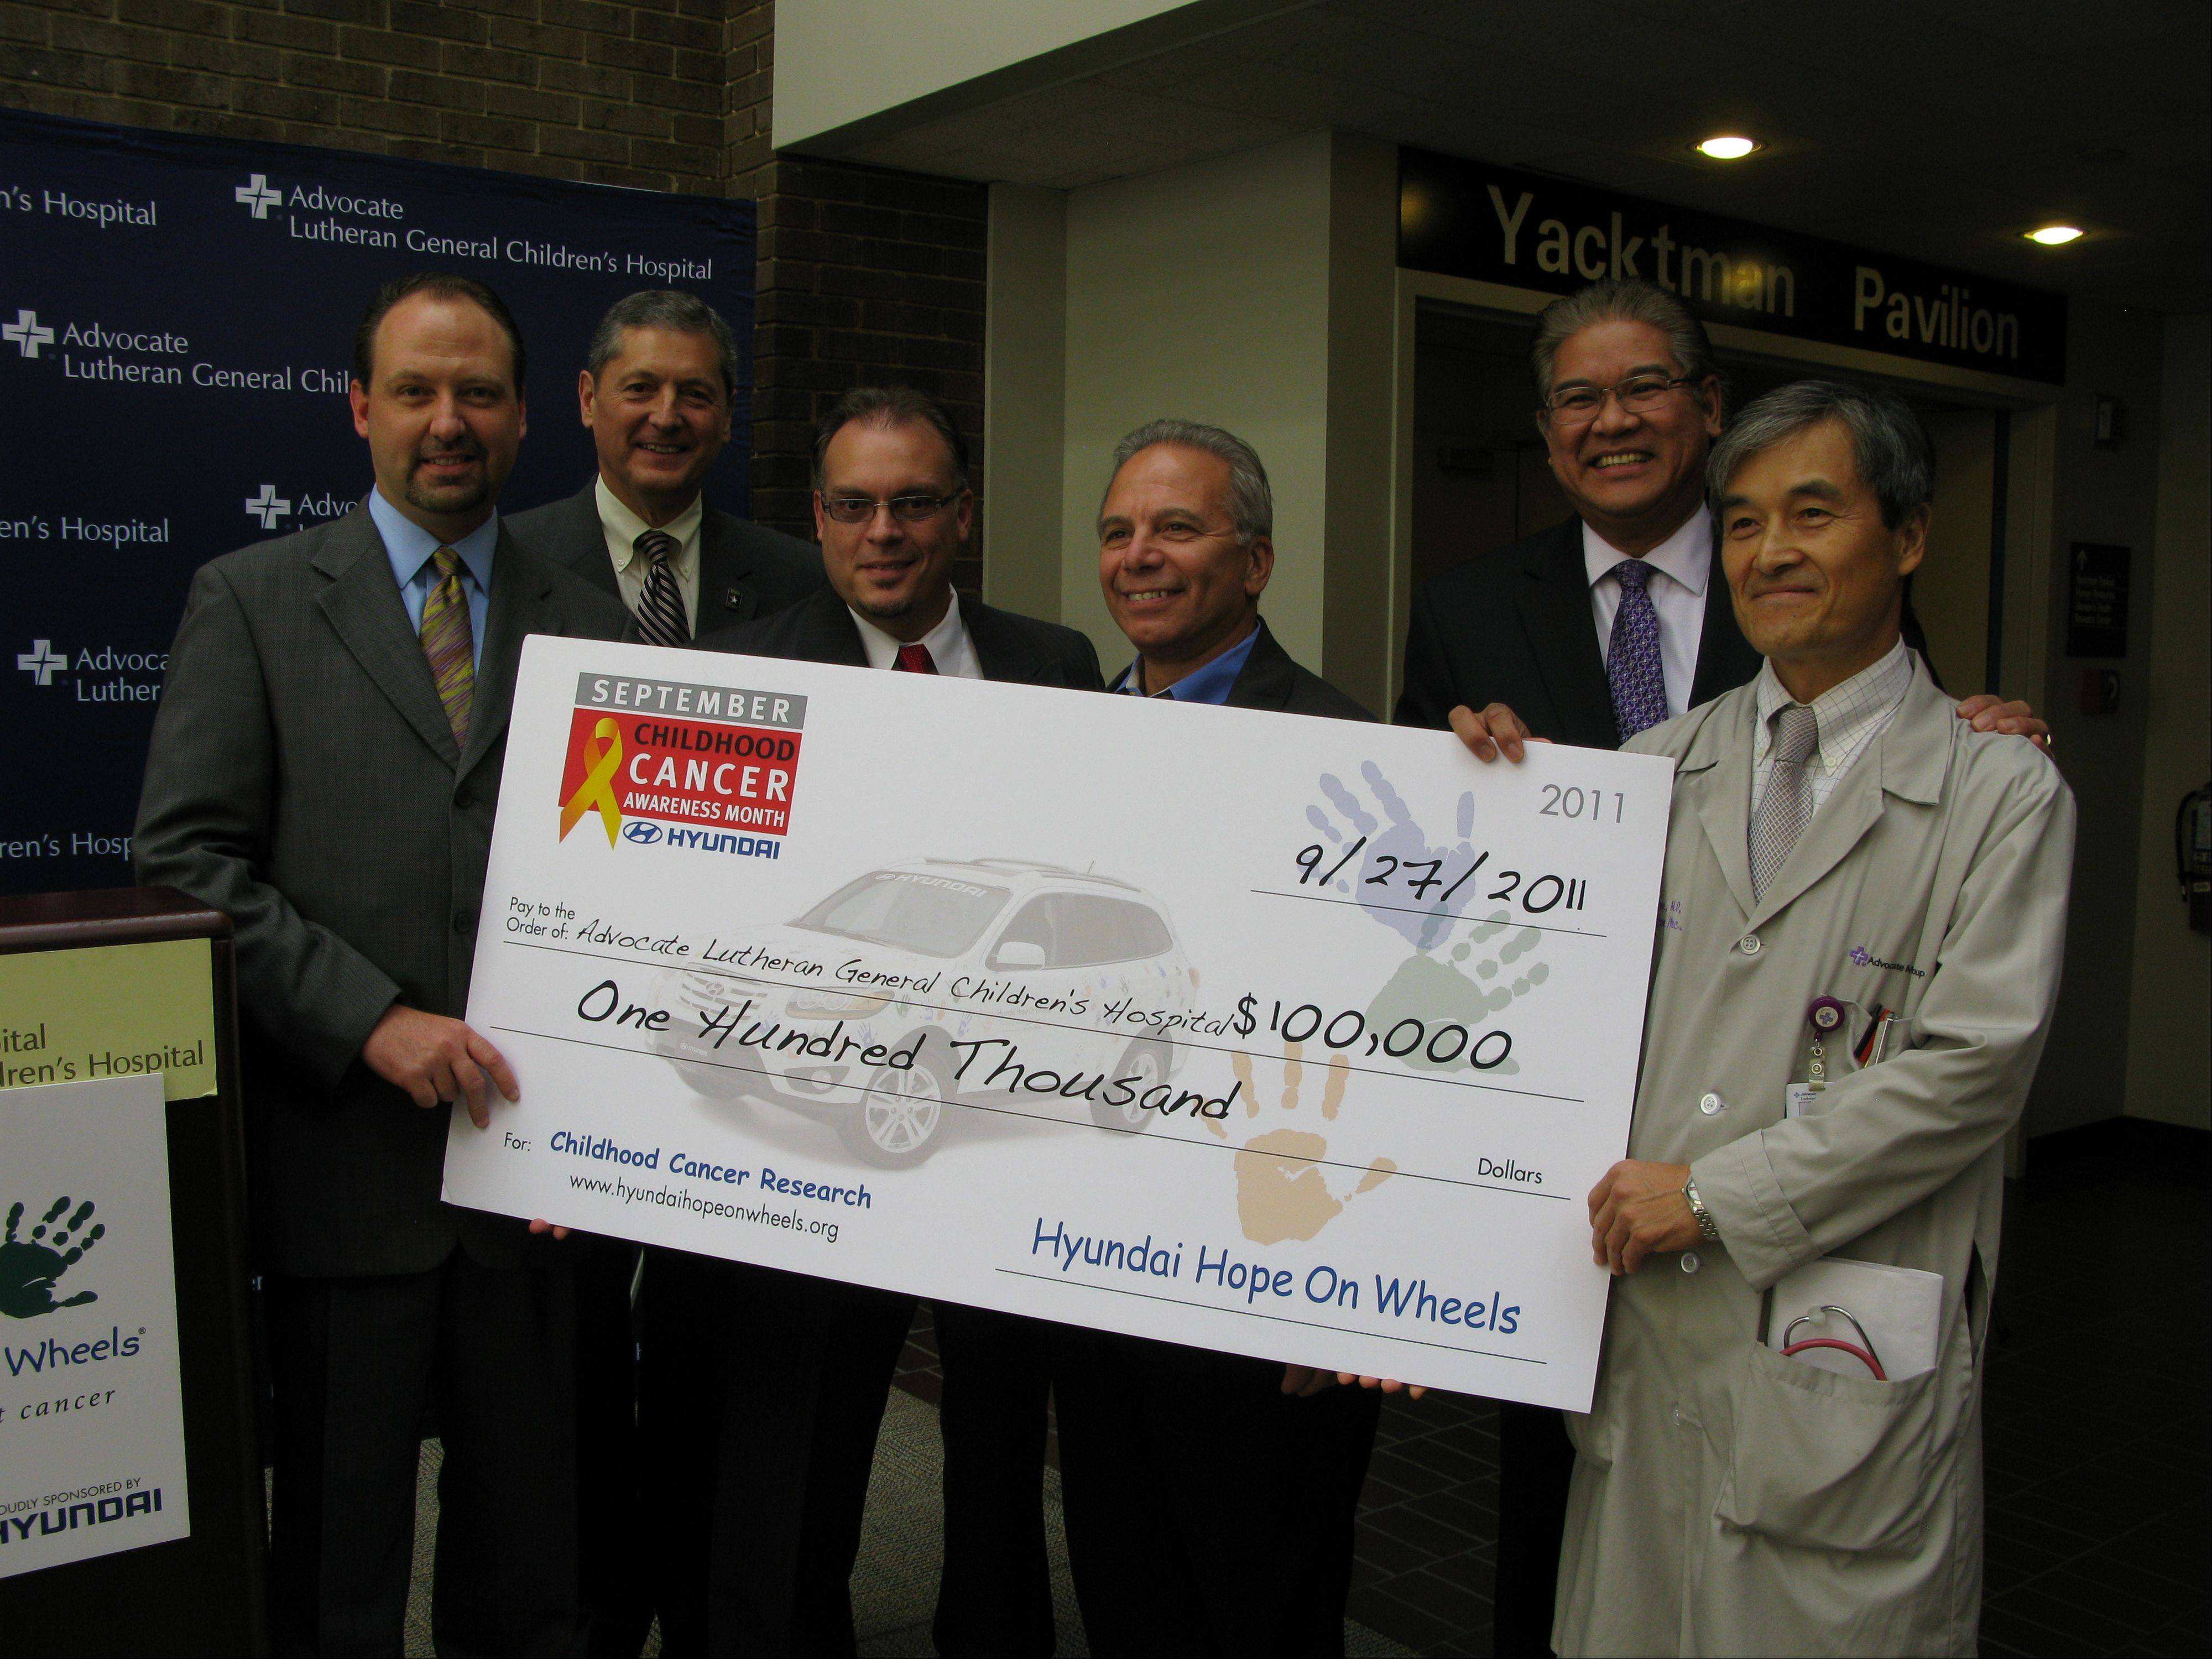 Paul Lamb, left, Hyundai regional sales manager, state Rep. David Harris, Enrique Perez, Schaumburg Hyundai sales manager, Dominic Pugliani, president of Downers Grove Hyundai, Anthony Armada, president of the hospital, and Dr. Jong-Hyo Kwon, pediatric oncologist, hold a replica of the check the hospital received.